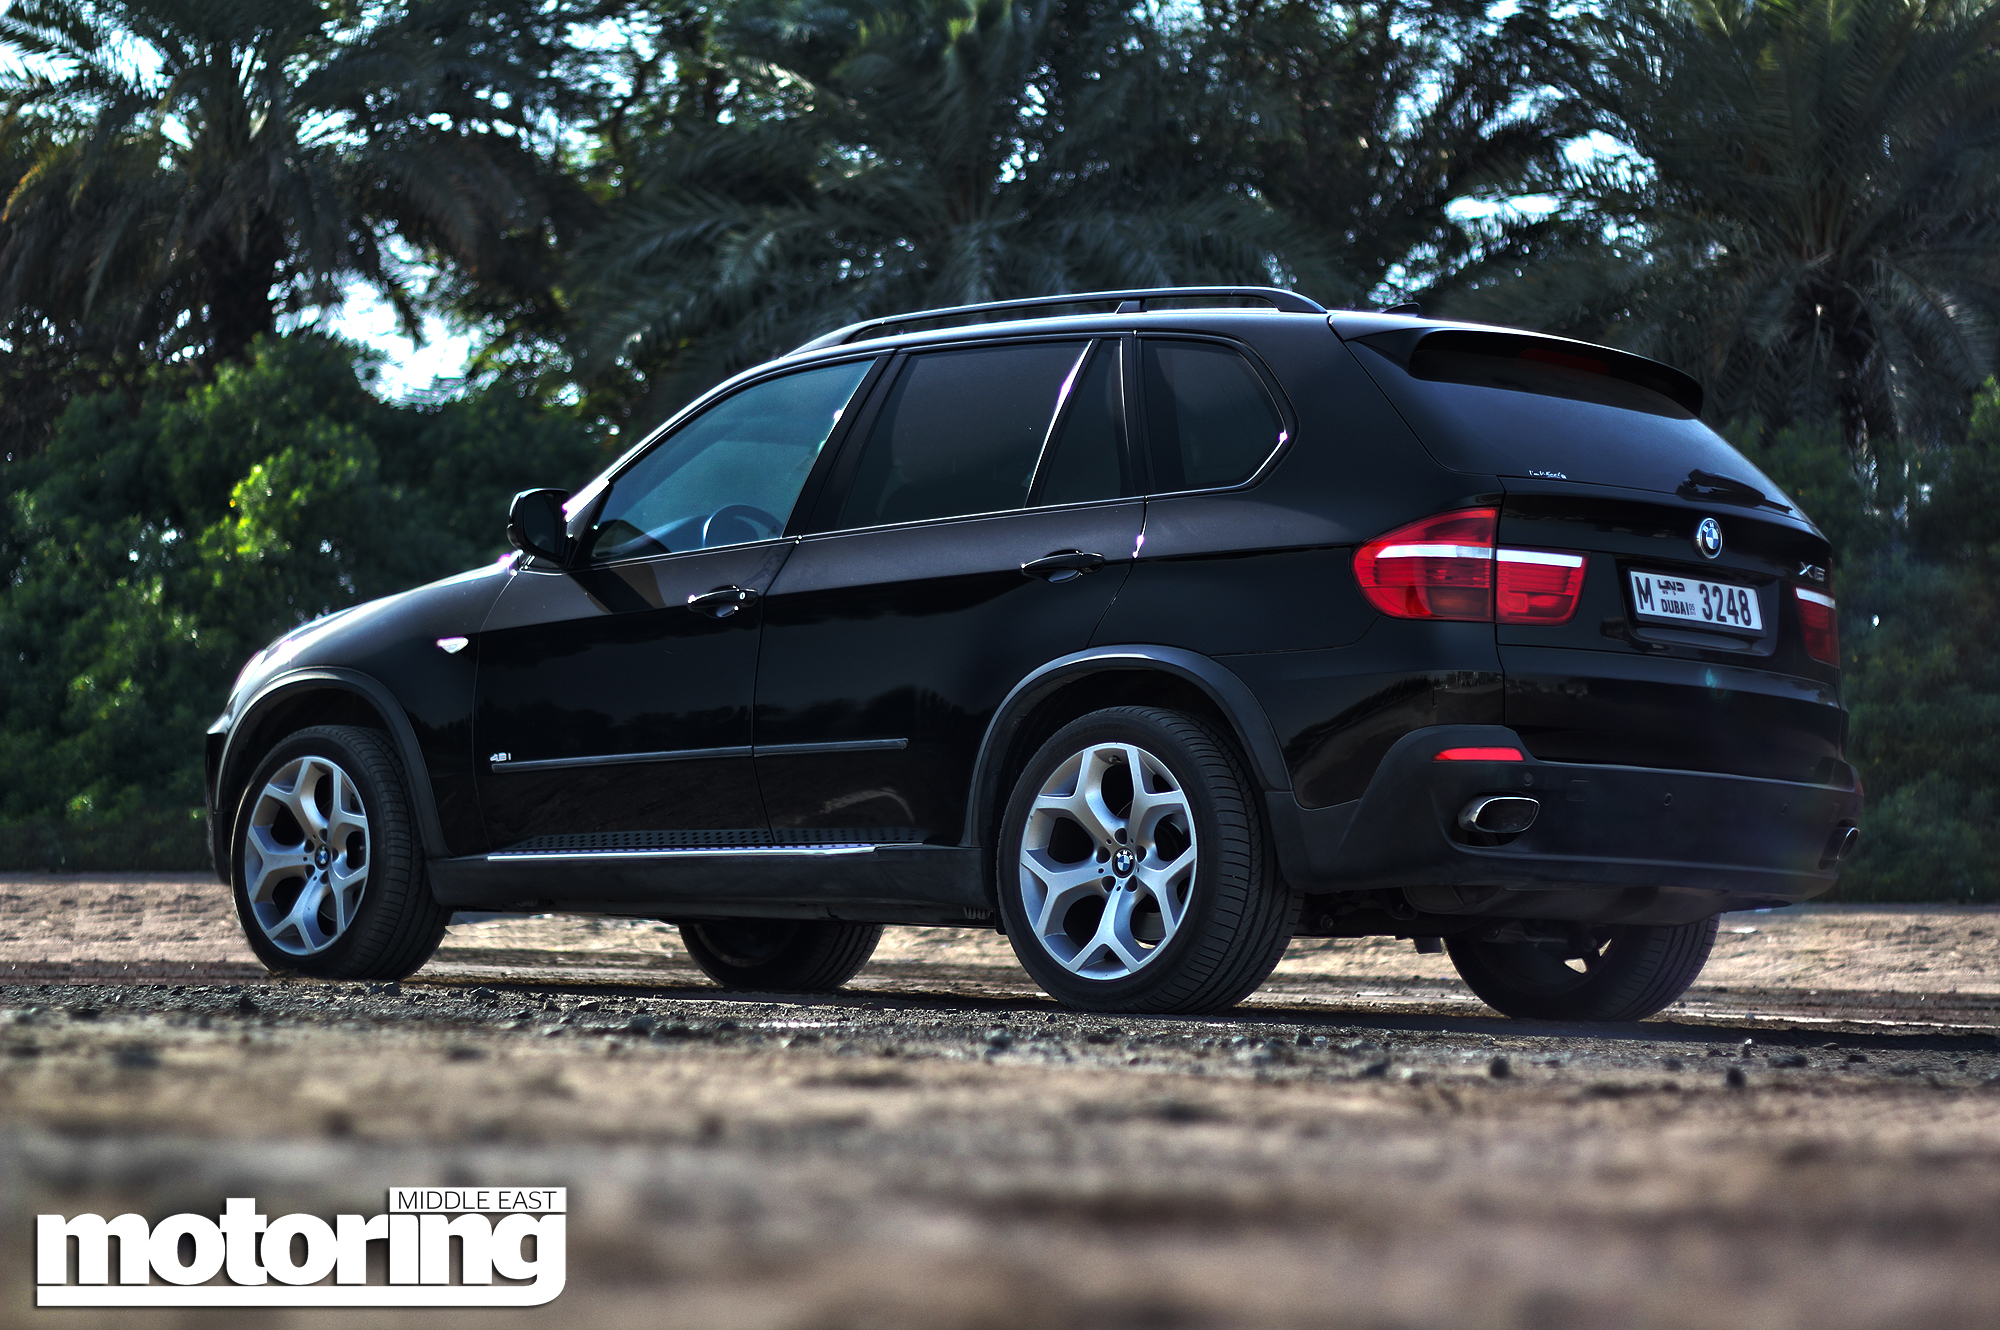 used buying guide bmw x5 2007 2013motoring middle east car news reviews and buying guides. Black Bedroom Furniture Sets. Home Design Ideas